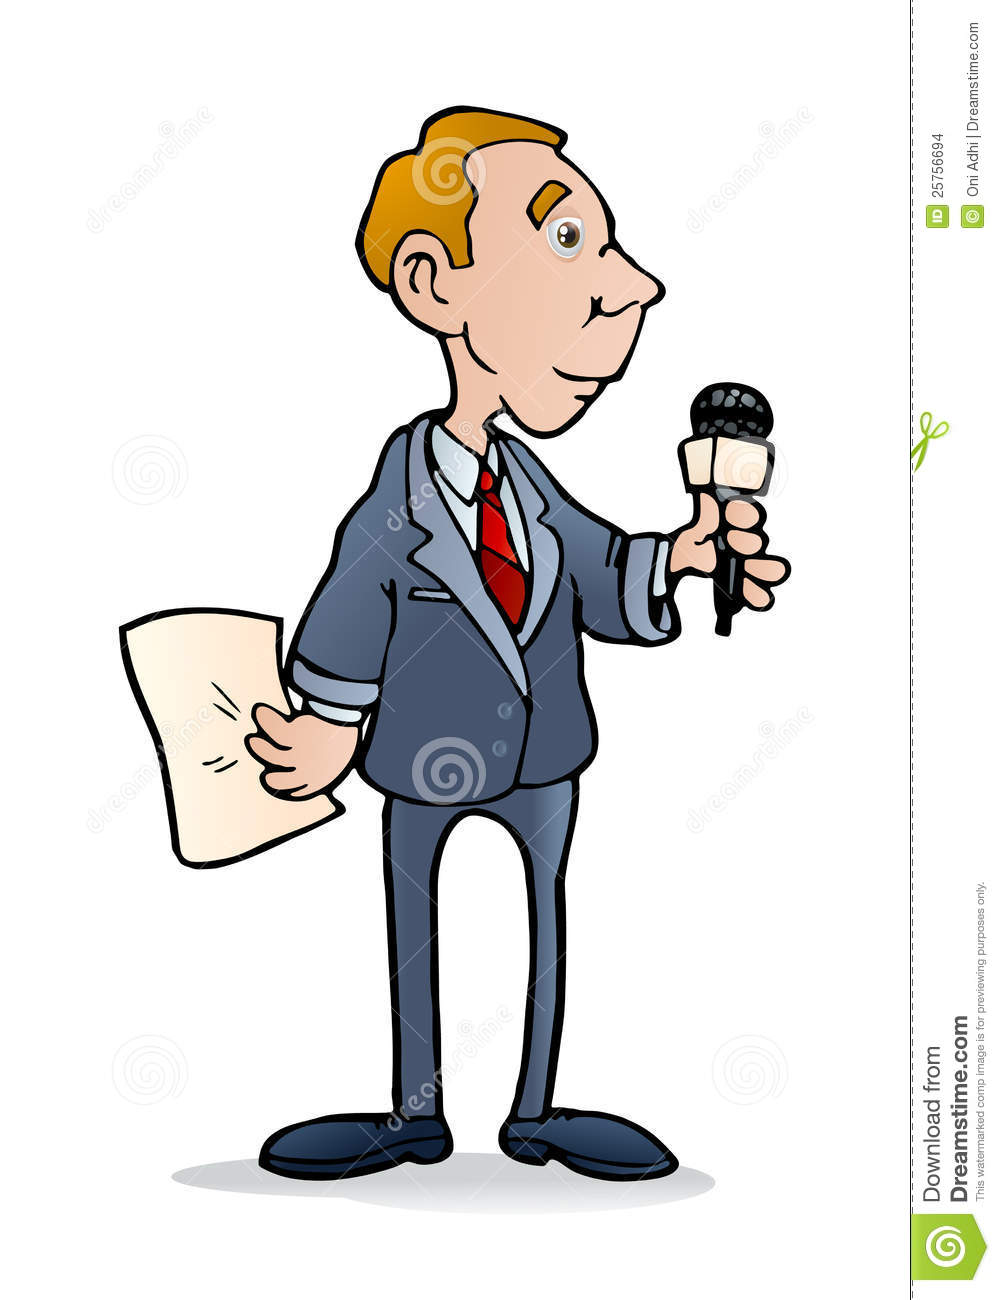 Illustration Of A Young Male Journalist Holding Microphone Reporting The News On White Background